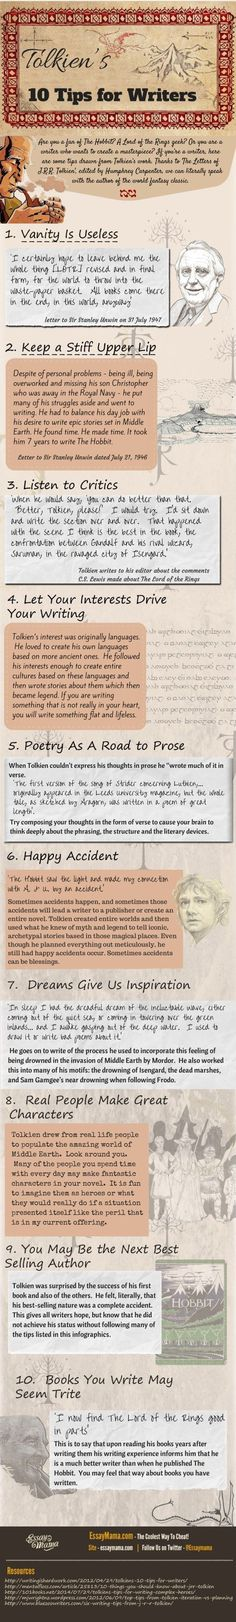 Tolkien s Writing Tips (Infographic) J. Tolkien s 10 Tips for WritersJ. Tolkien s 10 Tips for Writers Writing Quotes, Writing Advice, Writing Resources, Writing Help, Writing Skills, Writing A Book, Writing Ideas, Writing Fantasy, Fantasy Fiction